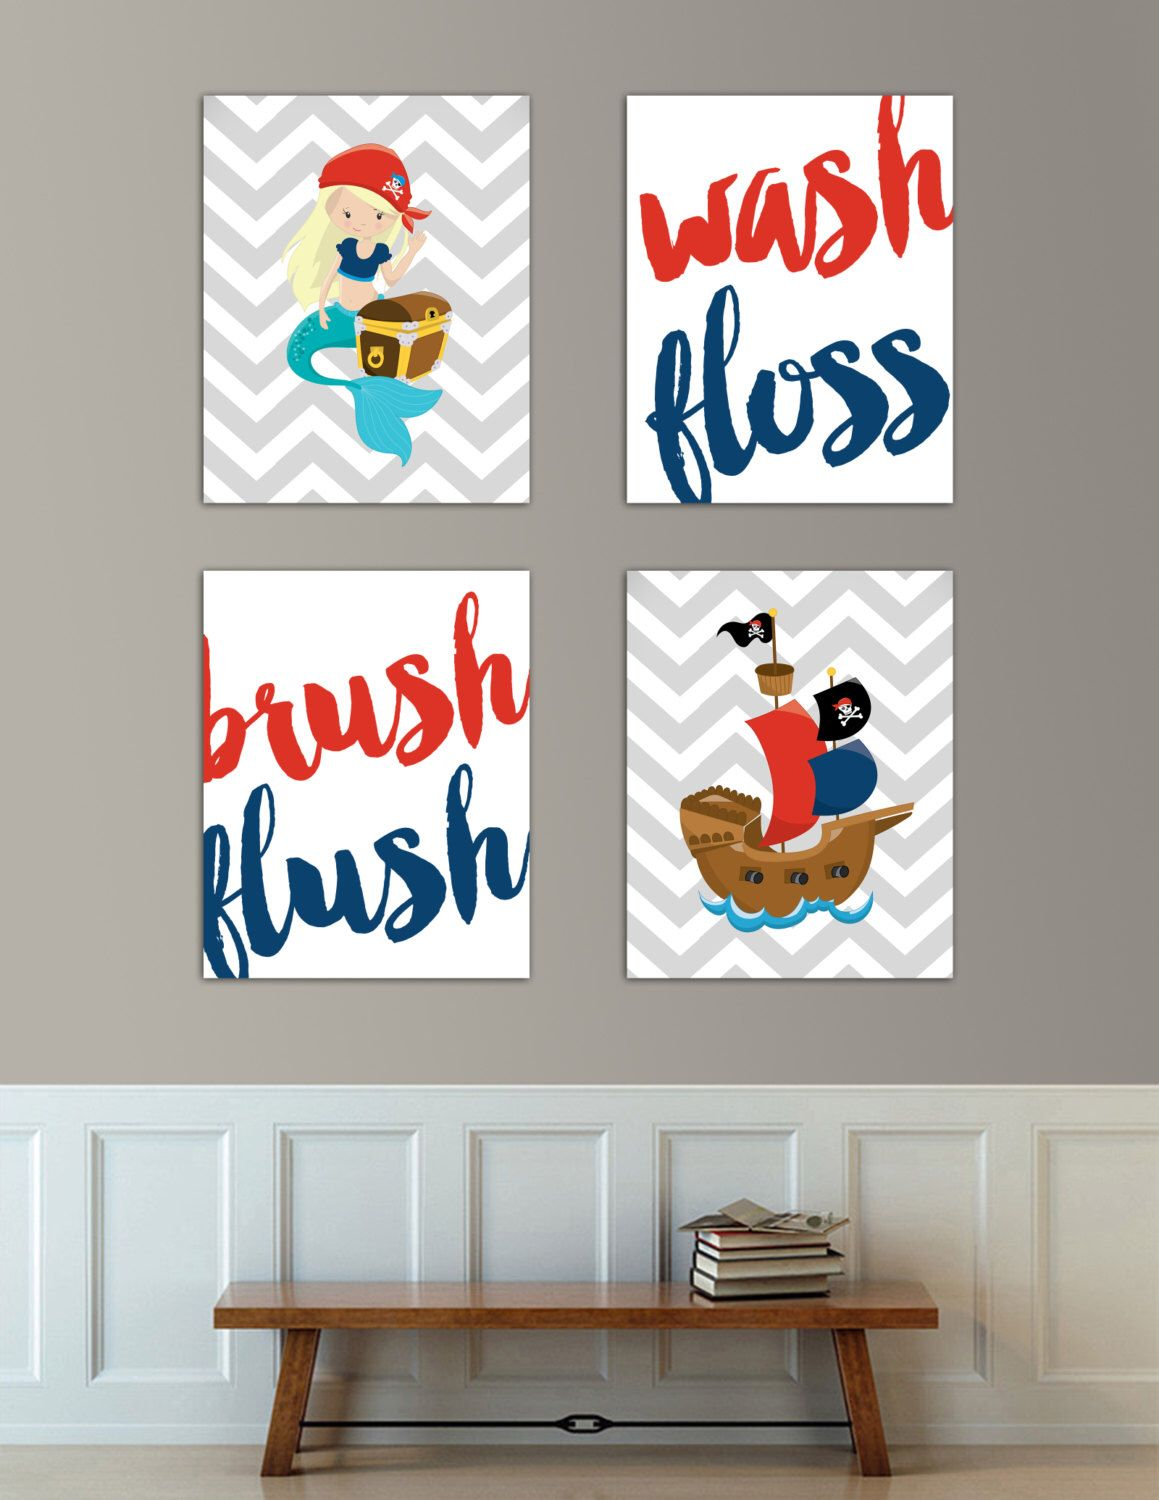 Bathroom wall art for kids - Kids Bathroom Art Wash Brush Floss Flush Pirate Mermaid